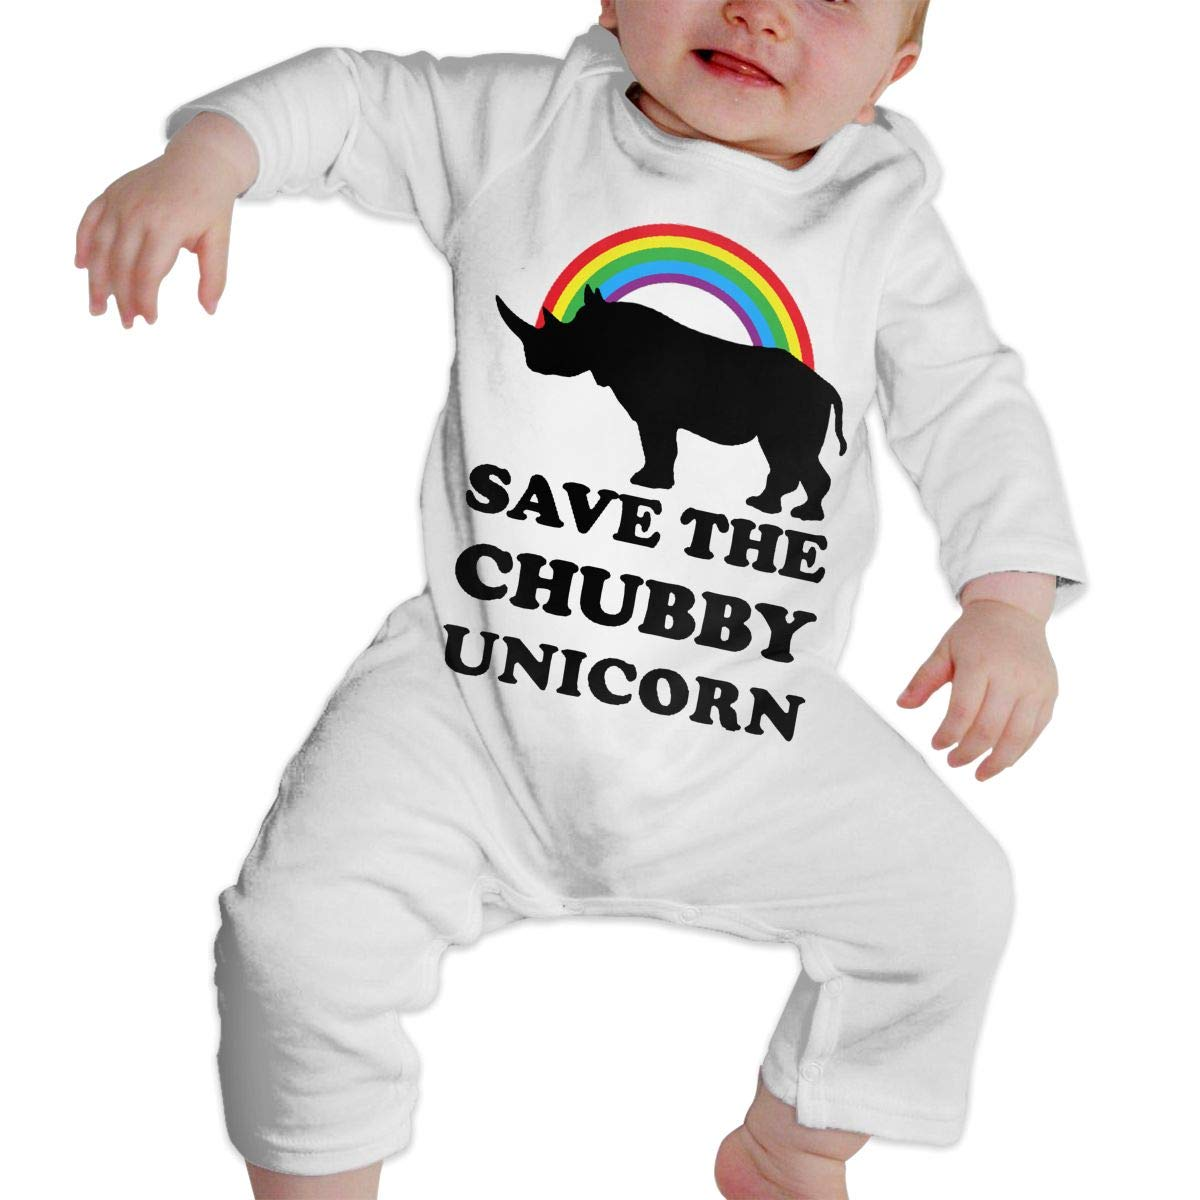 Save The Chubby Unicorns Unisex Long Sleeve Baby Gown Baby Bodysuit Unionsuit Footed Pajamas Romper Jumpsuit